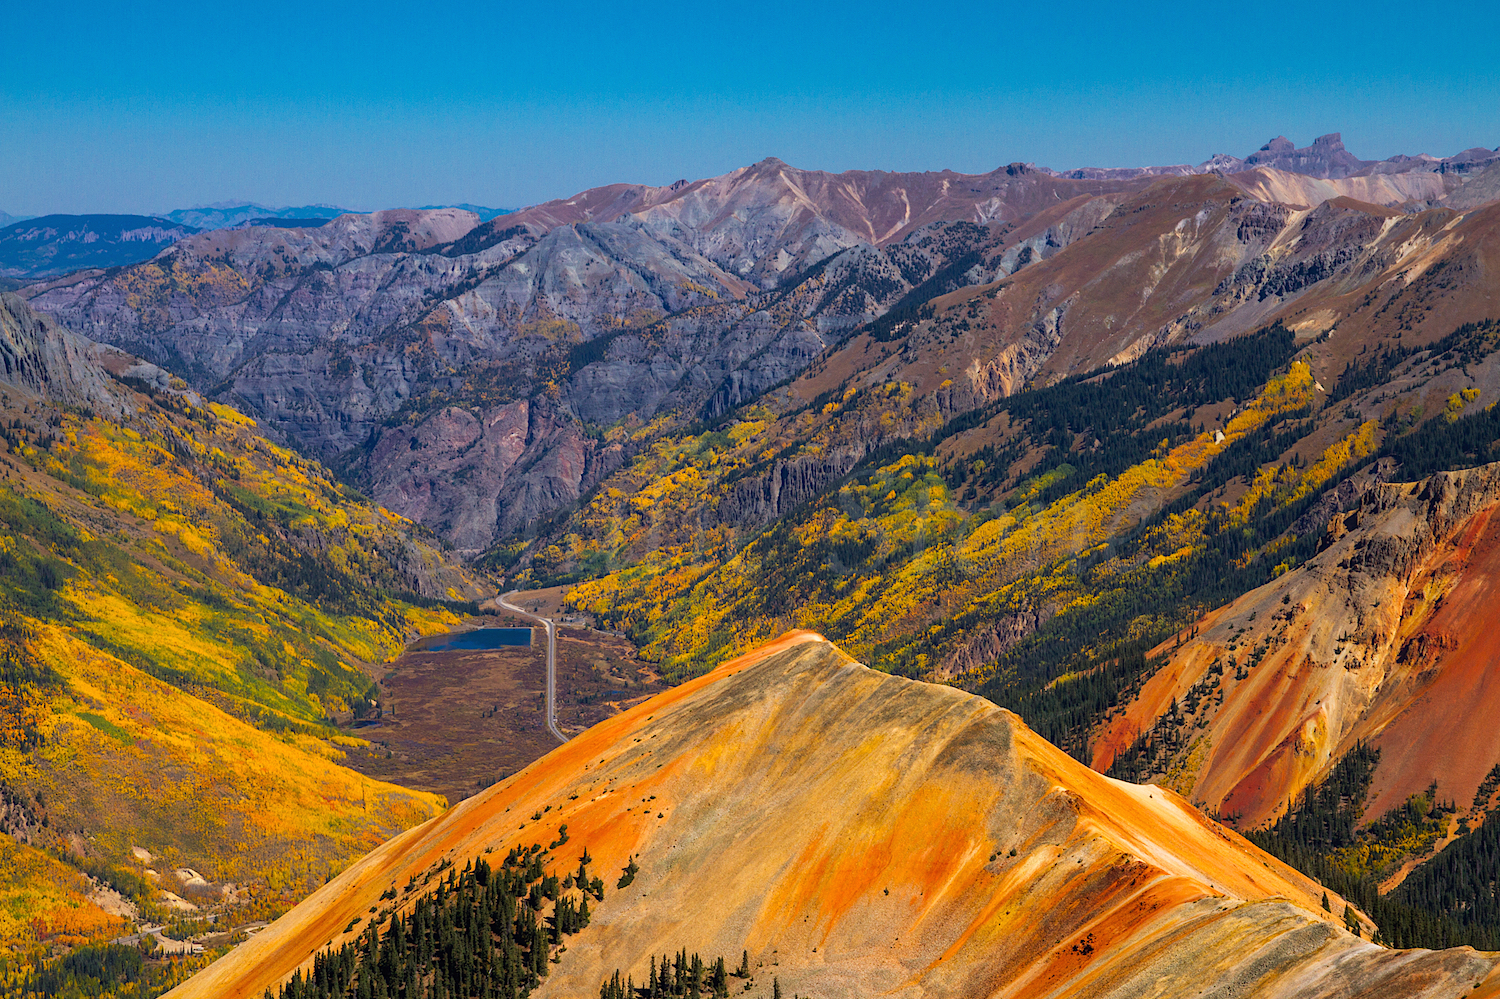 Red Mountain #3, Image #1224